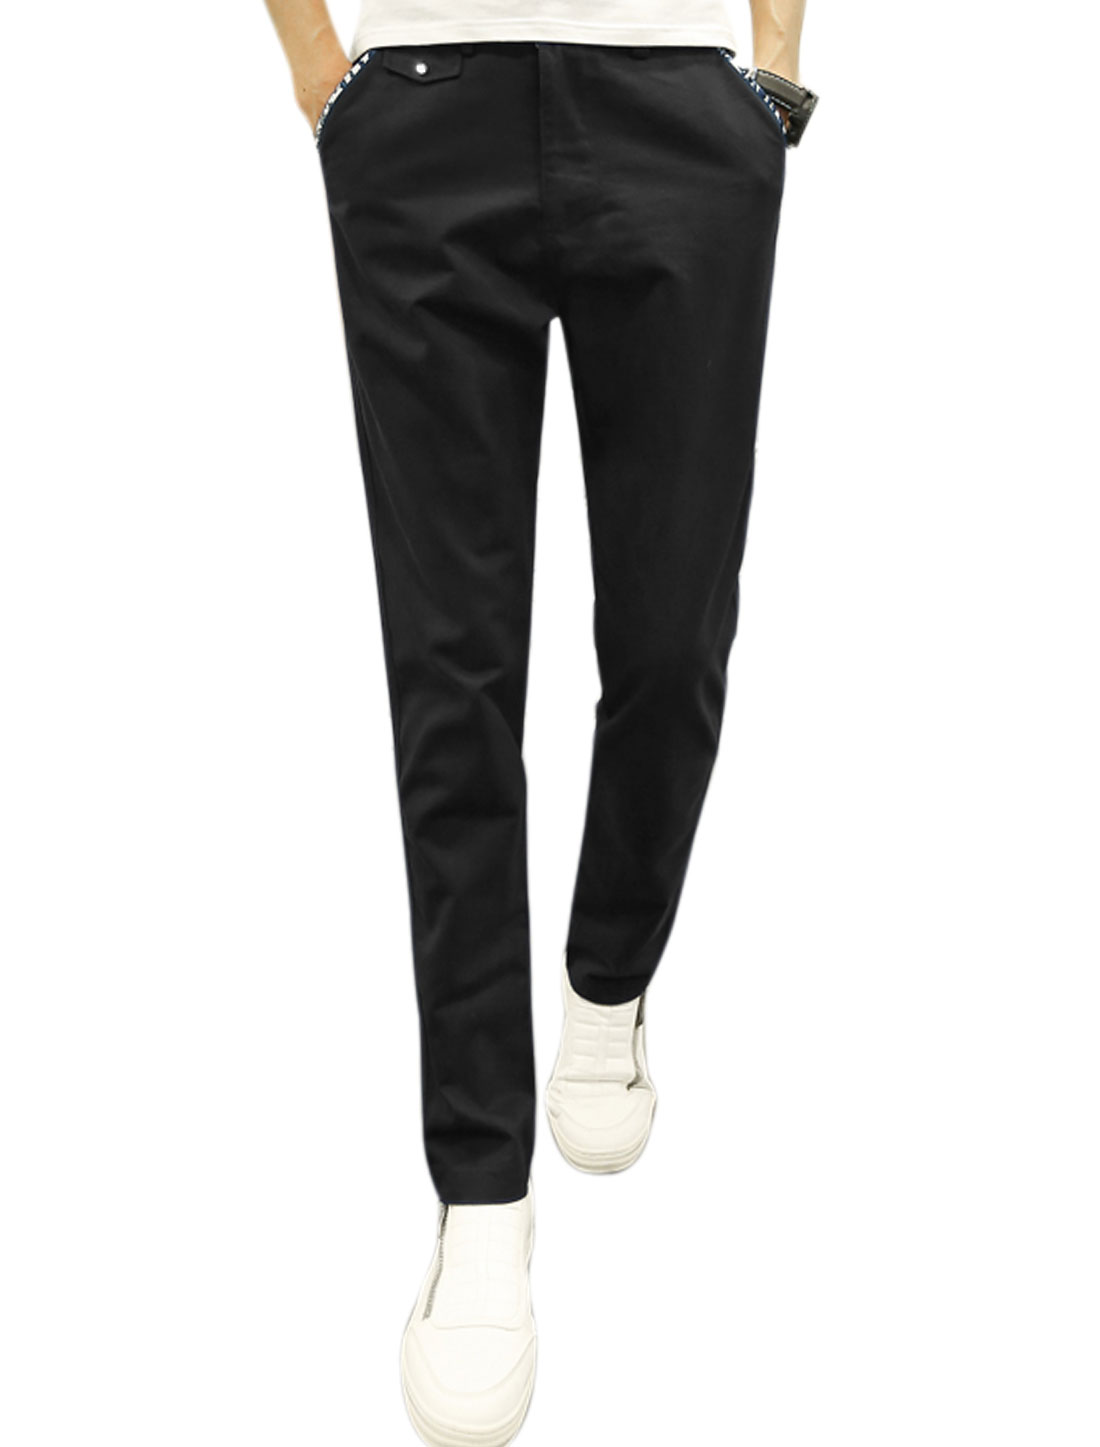 Men Natural Waist Zip Fly Two Hip Pockets Tapered Casual Pants Black W32